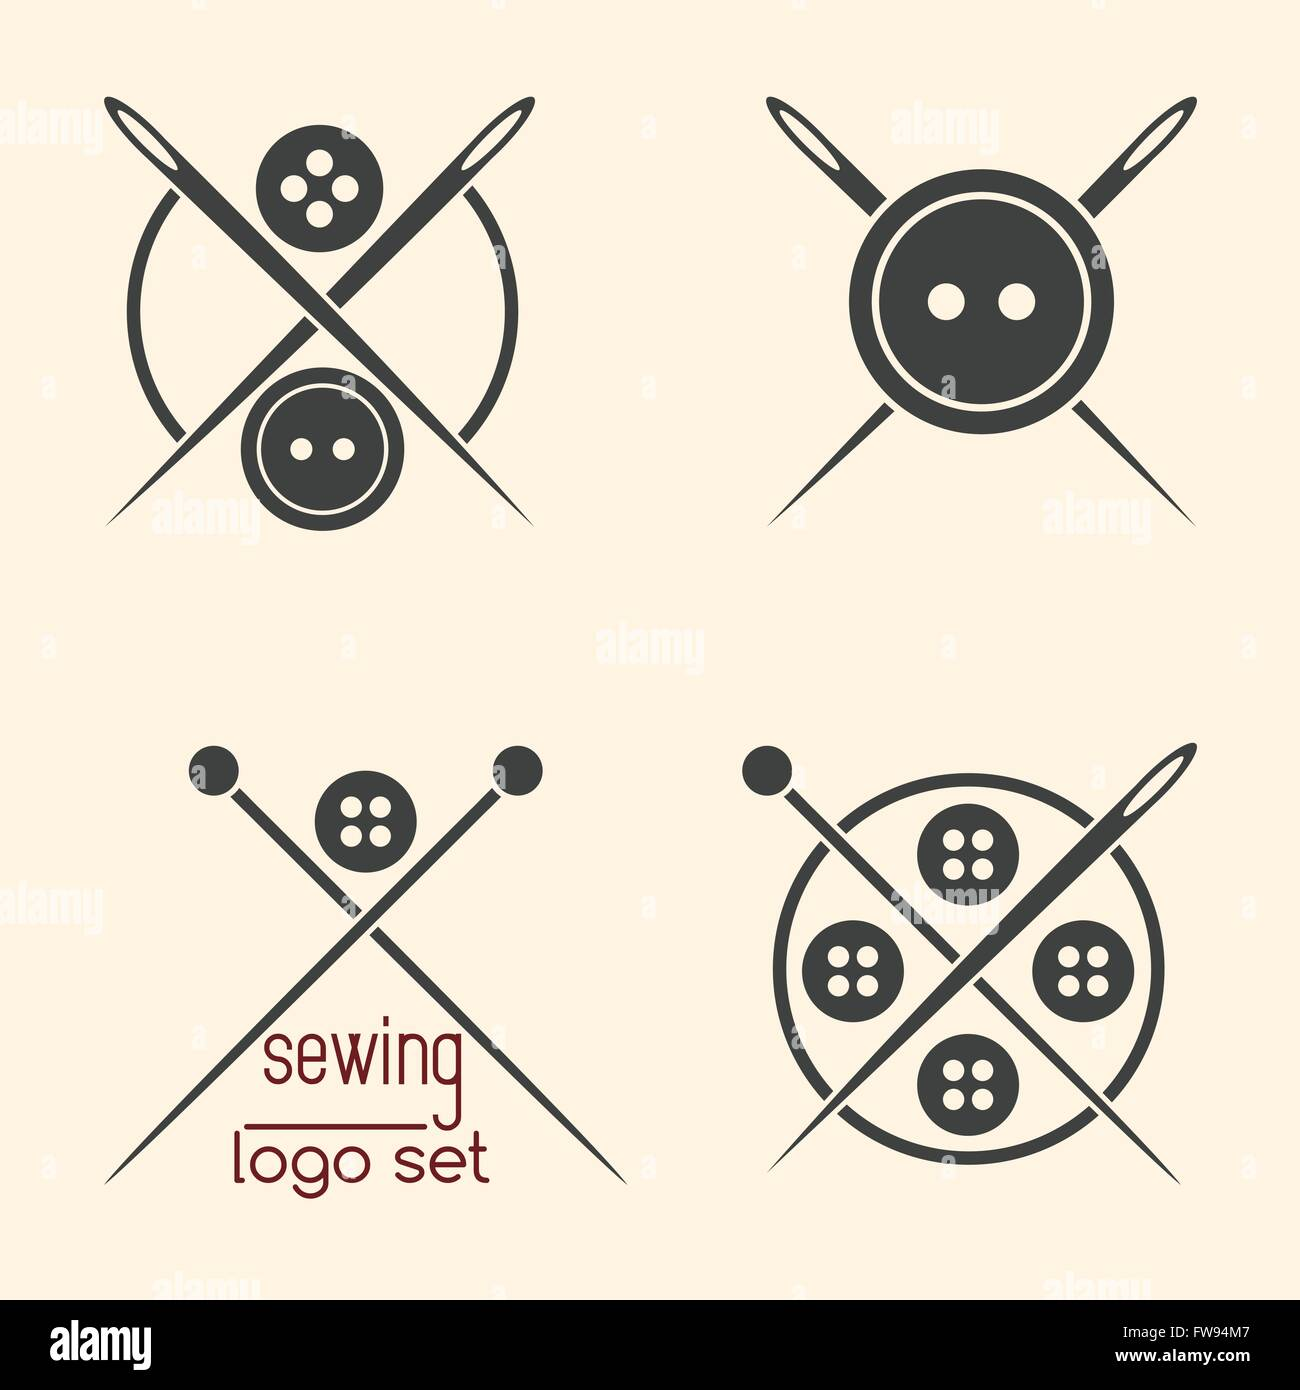 Set of sewing logotypes on beige background - Stock Vector